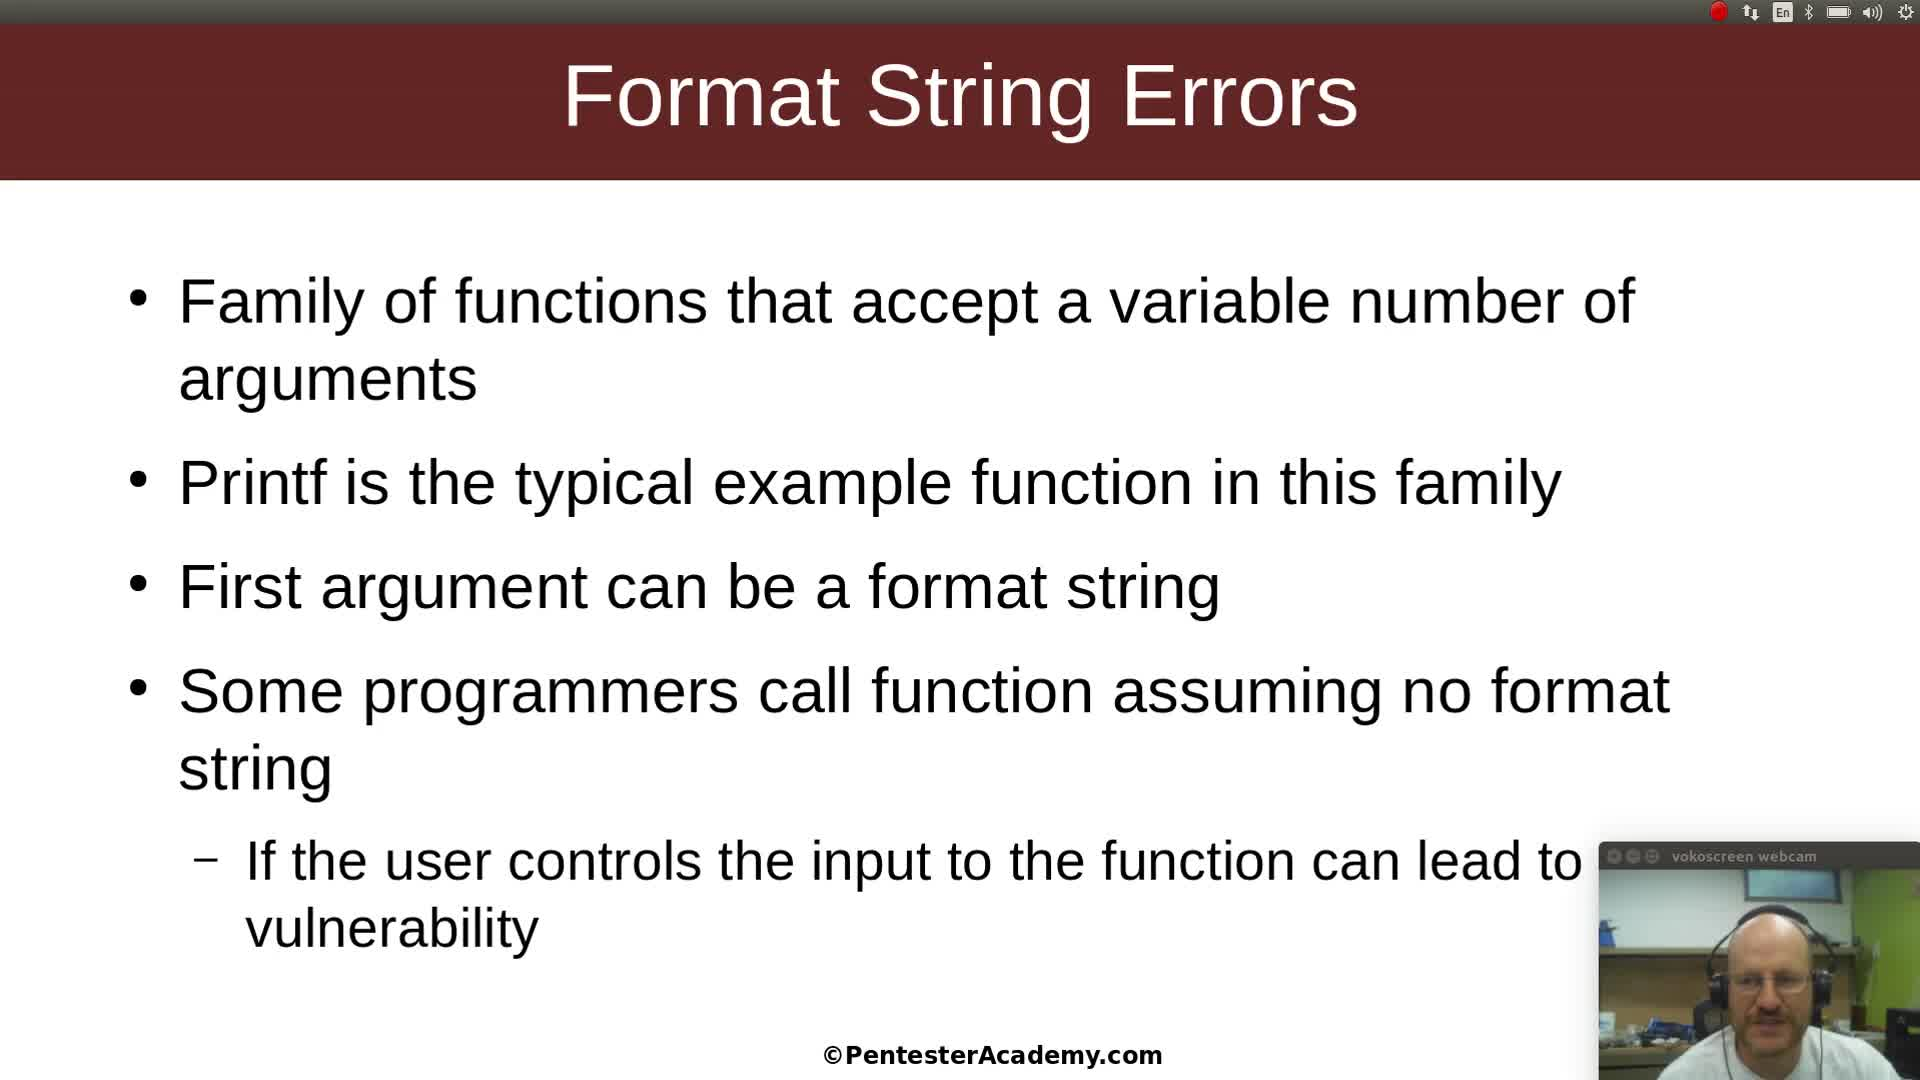 Format String Errors Part 1: The Basics